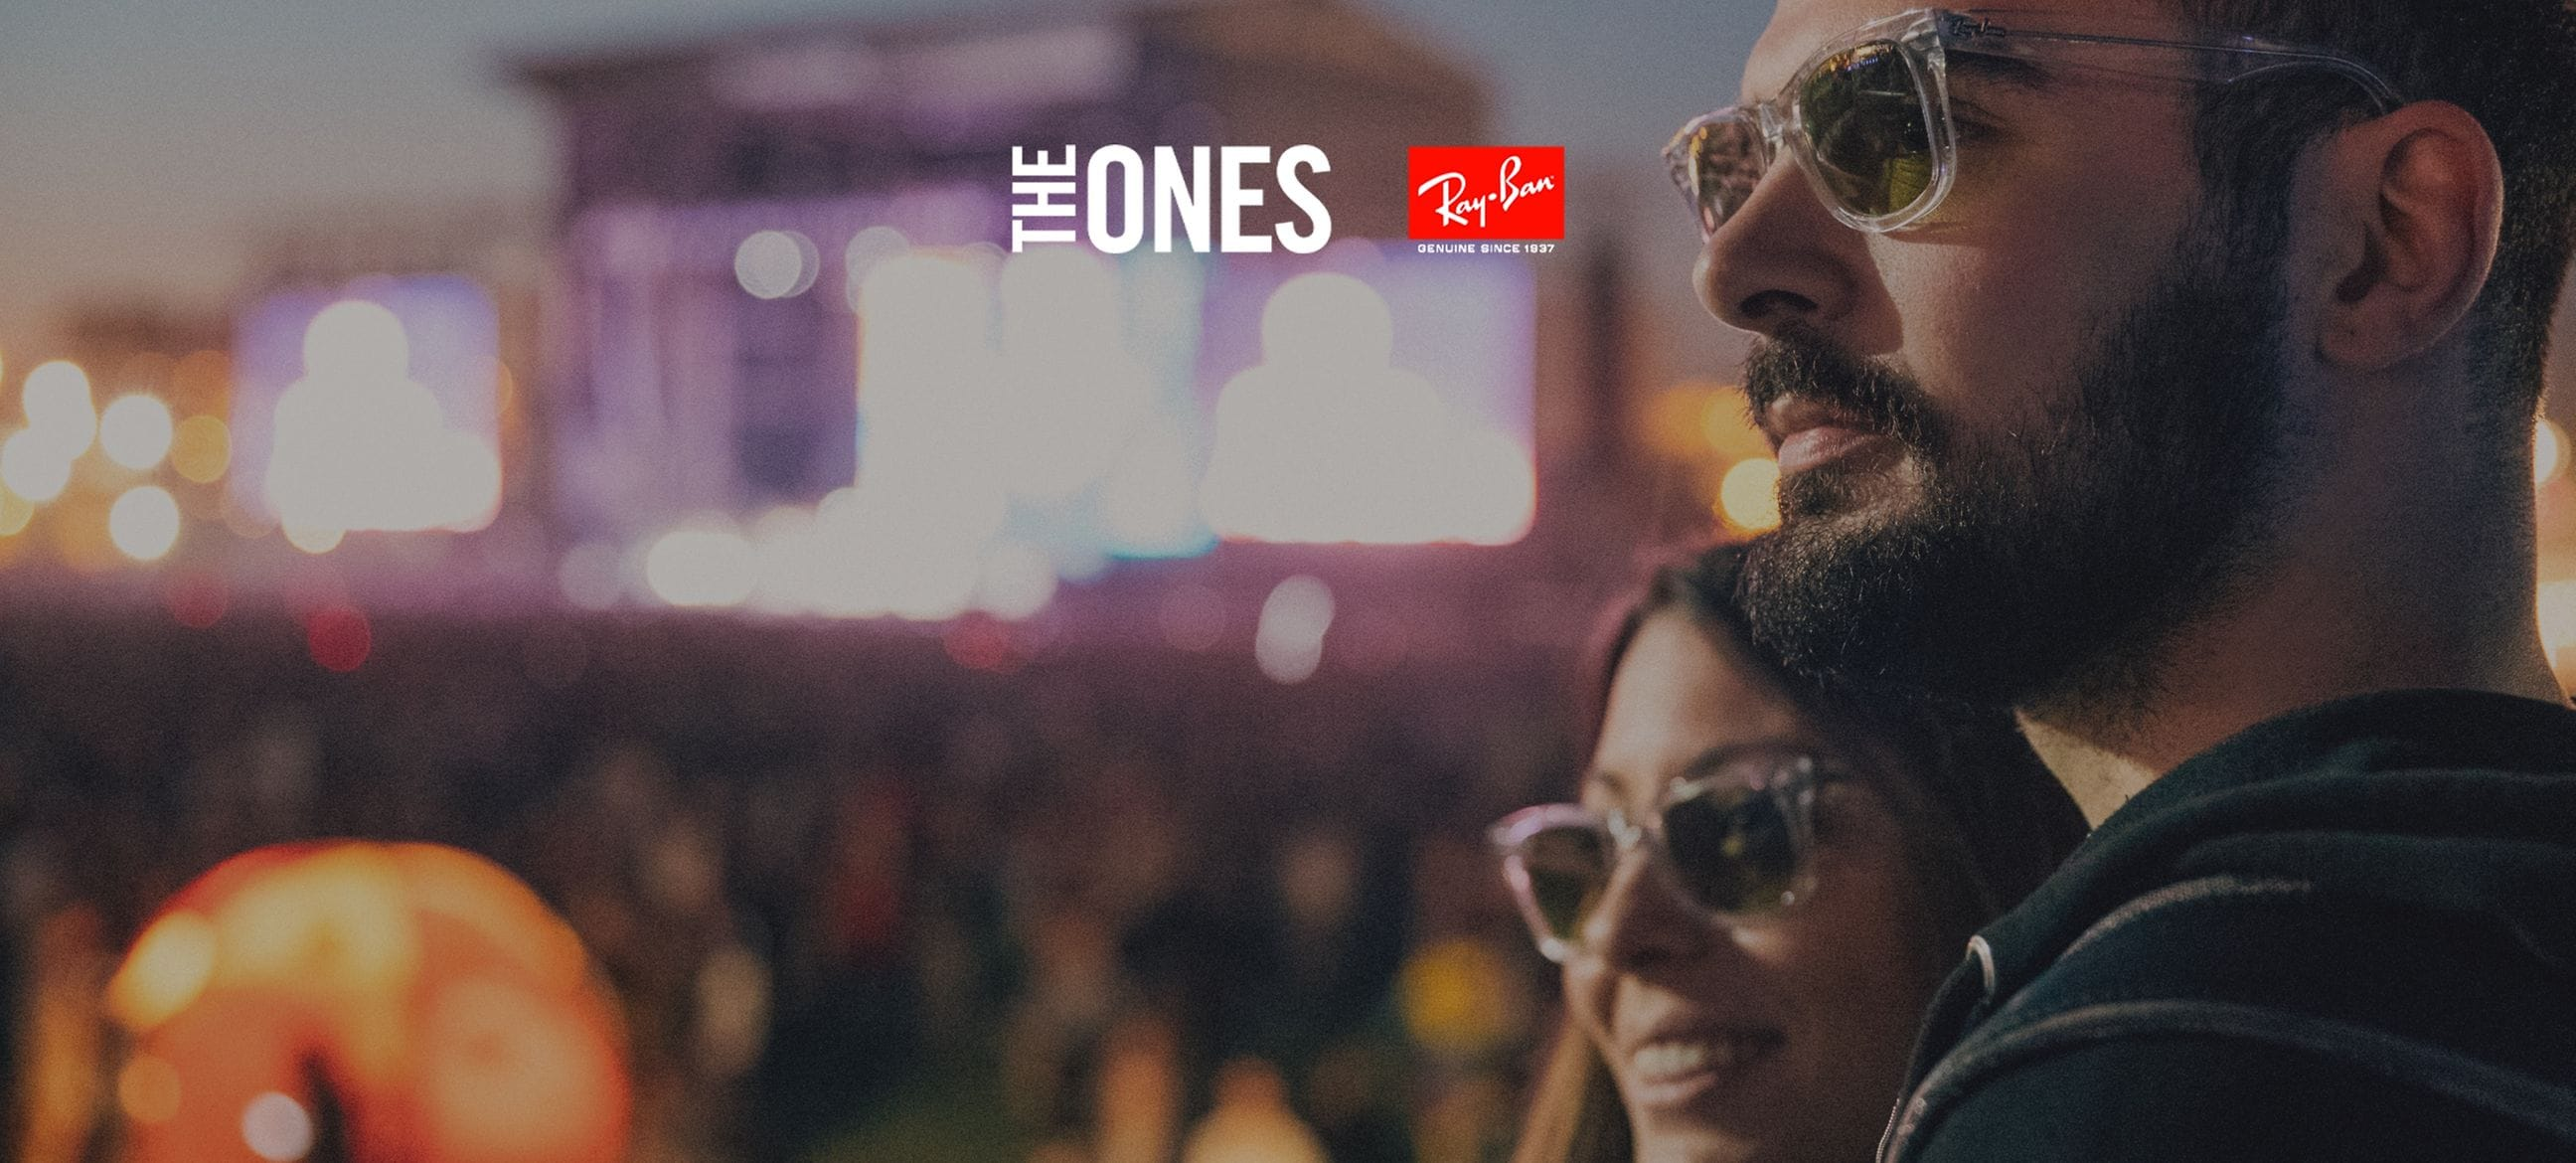 MORE THAN A CLUB, A WAY OF LIVING RAY-BAN.